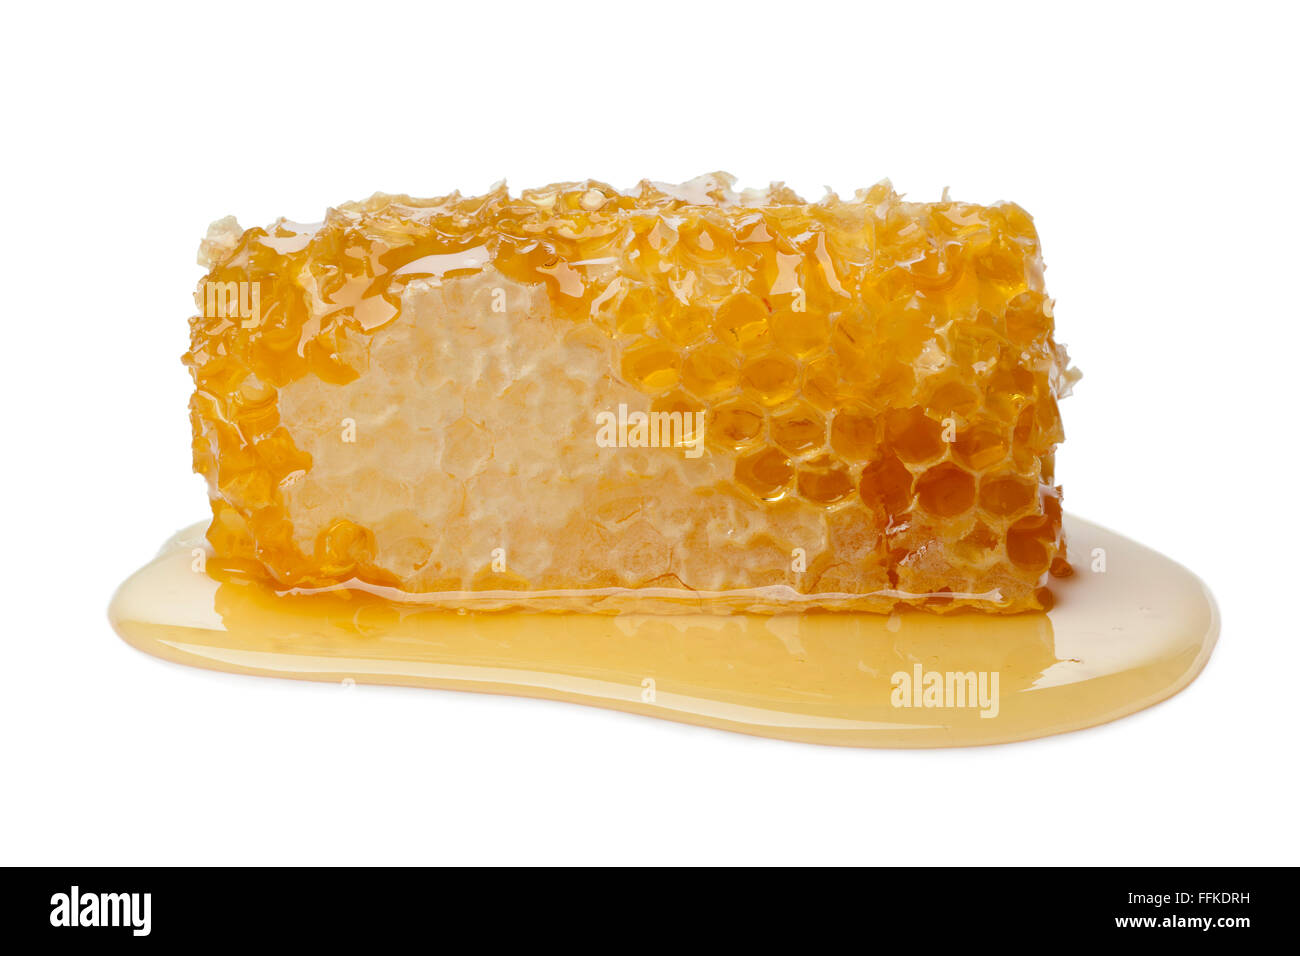 Honeycomb and honey on white background - Stock Image